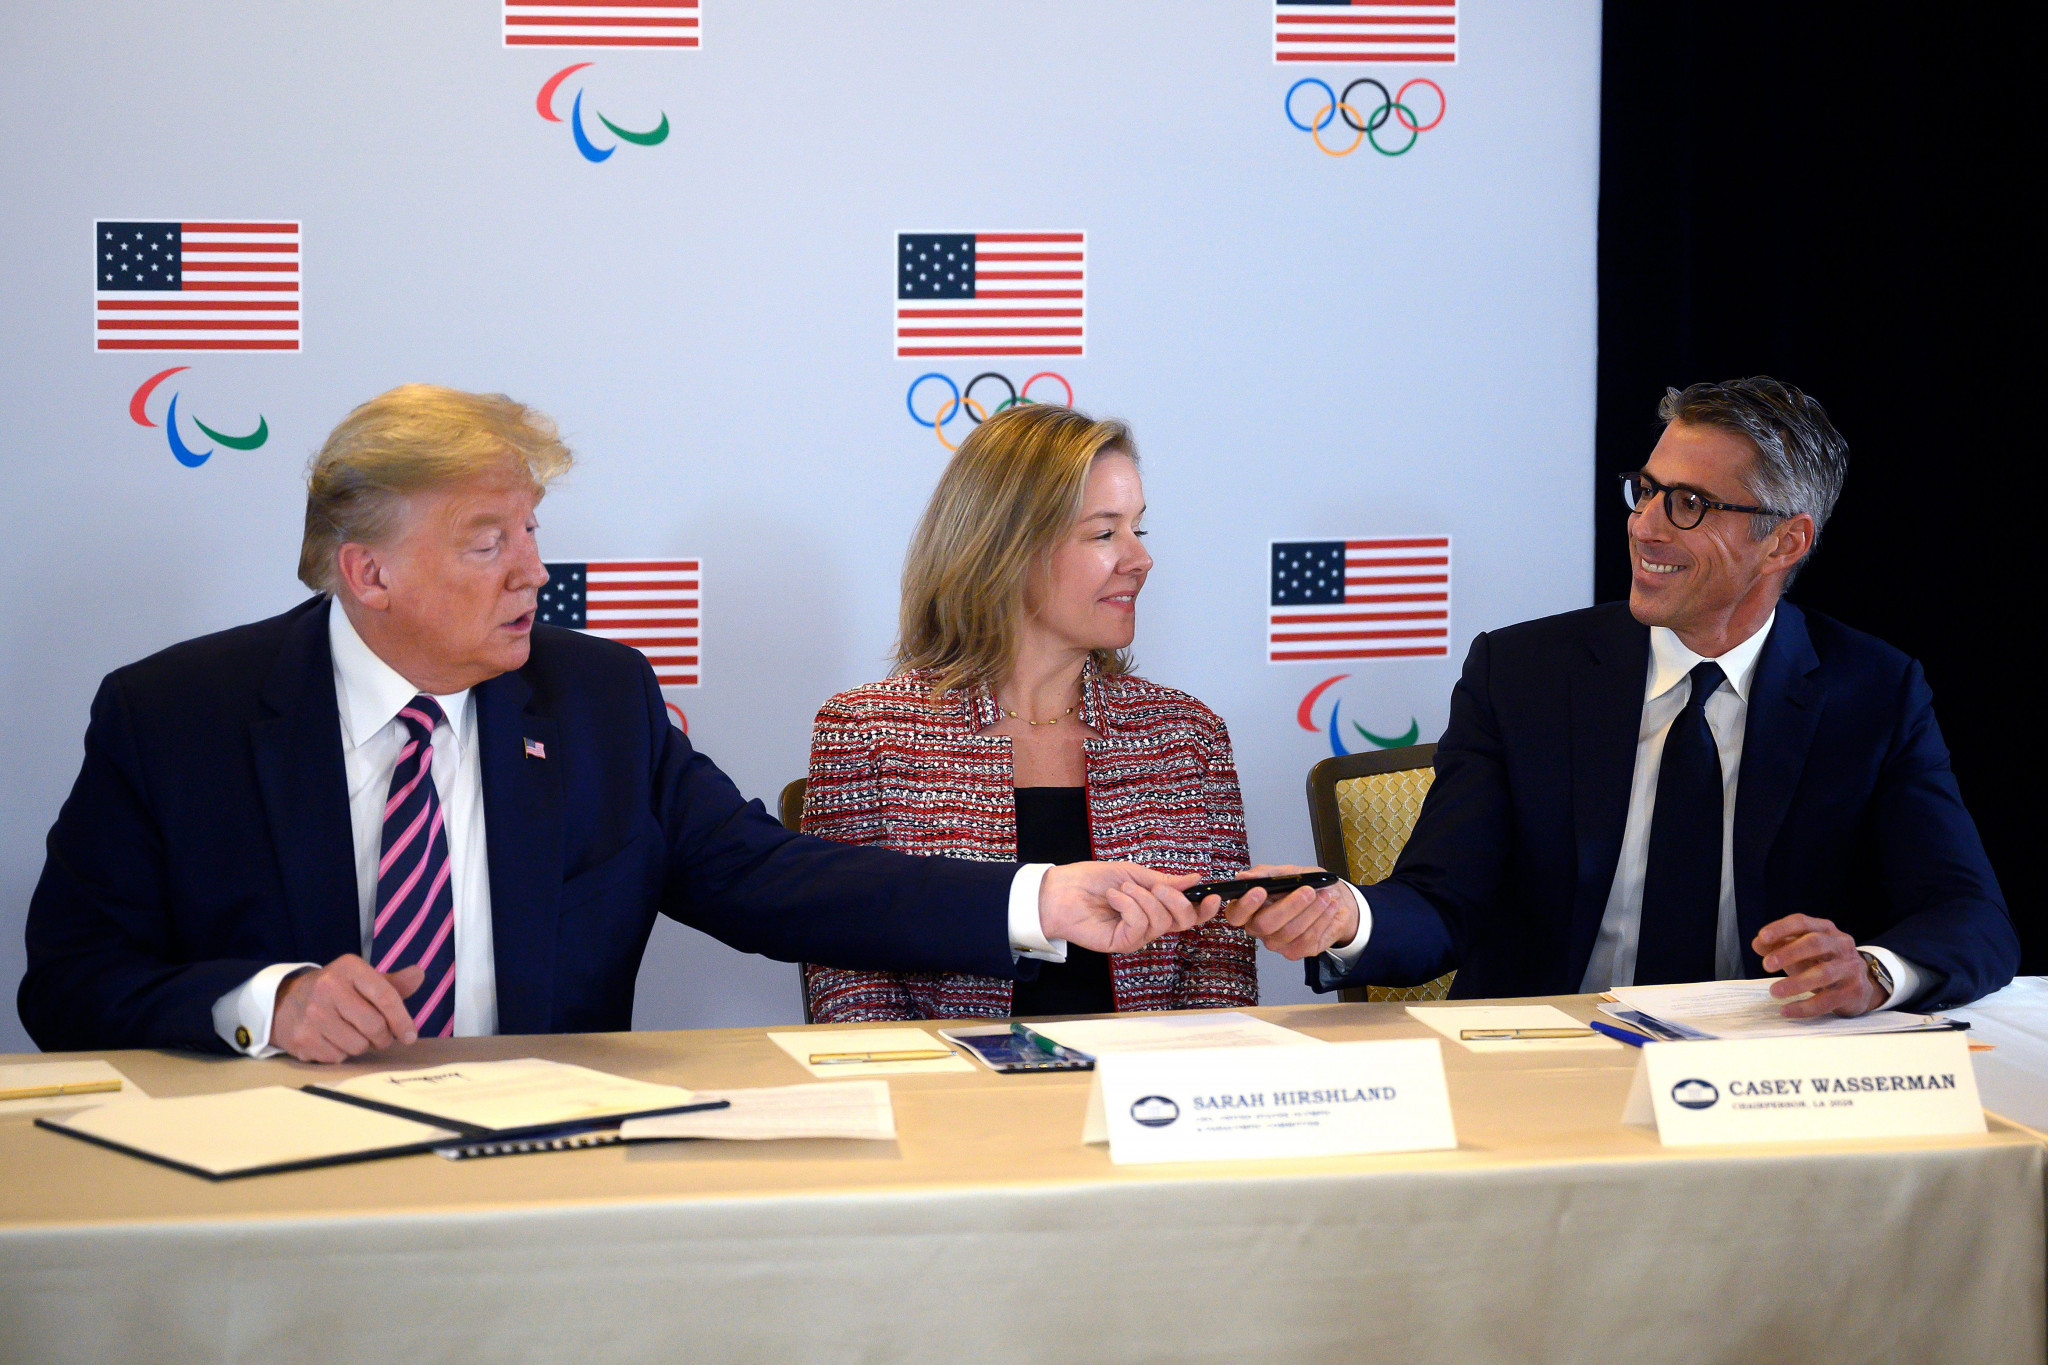 Los Angeles 2028 chairman Casey Wasserman, right, claimed they could not have won their bid to host the Olympic Games for the third time without the support of US President Donald Trump ©Getty Images